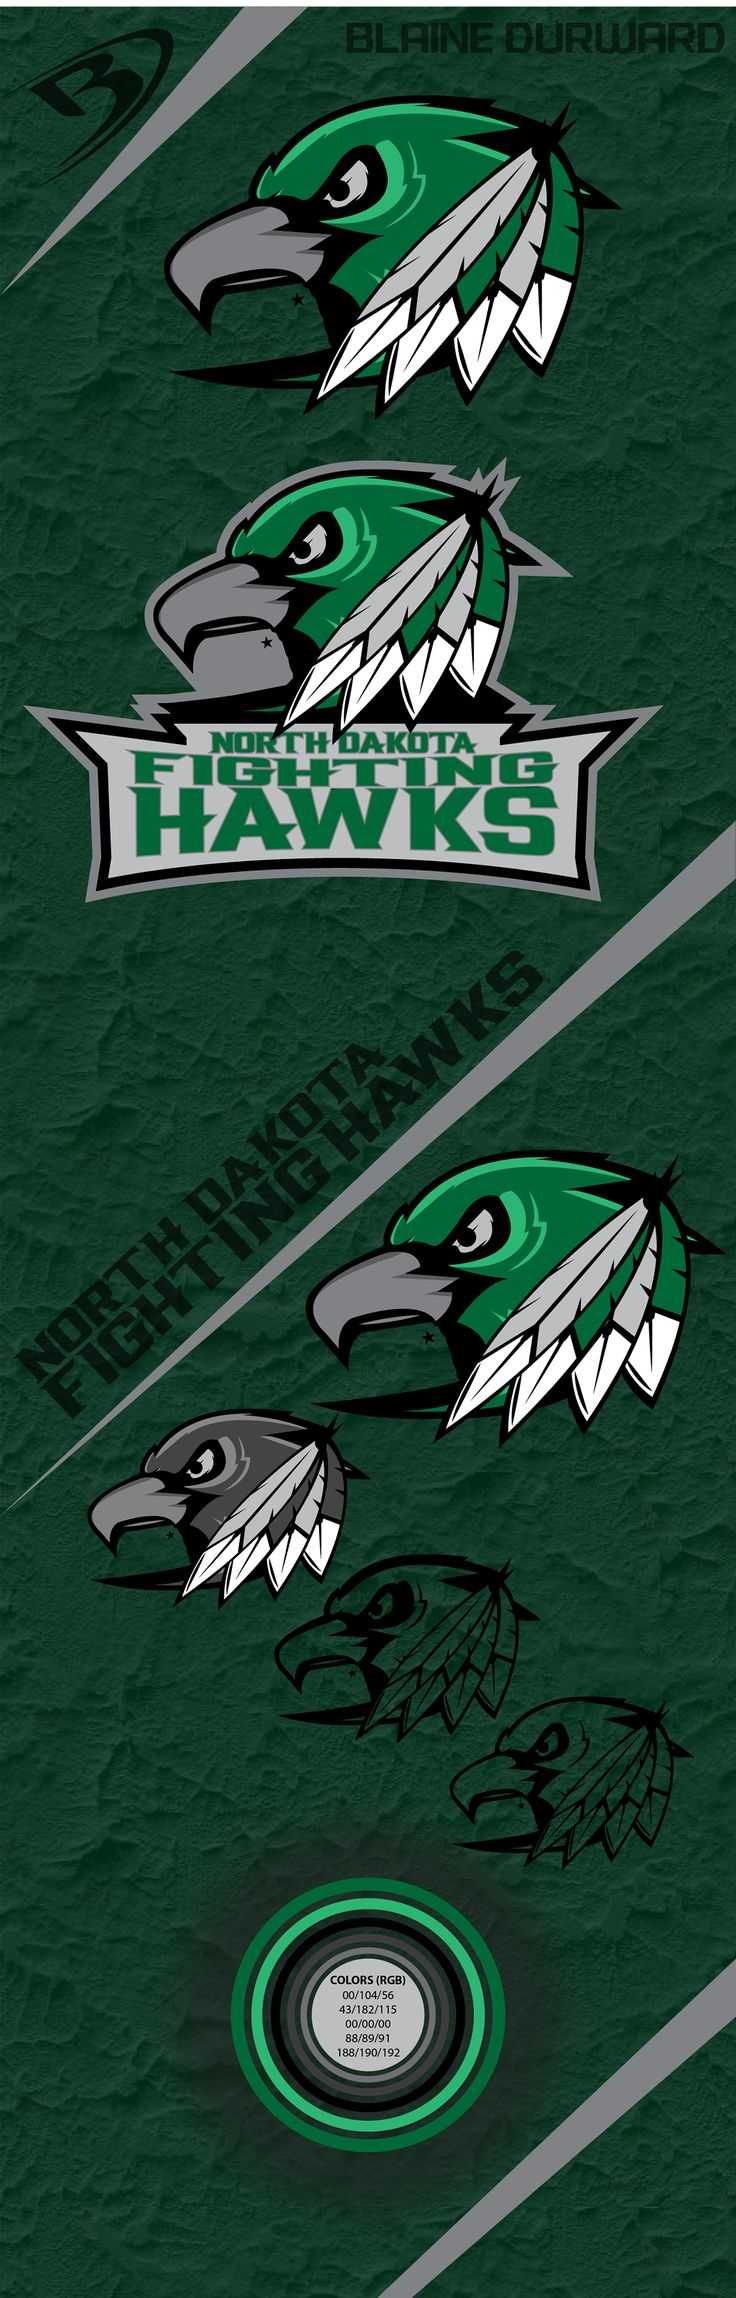 Probably the best one I've seen! The University of North Dakota Fighting Hawks logo designed by a University of North Dakota student.